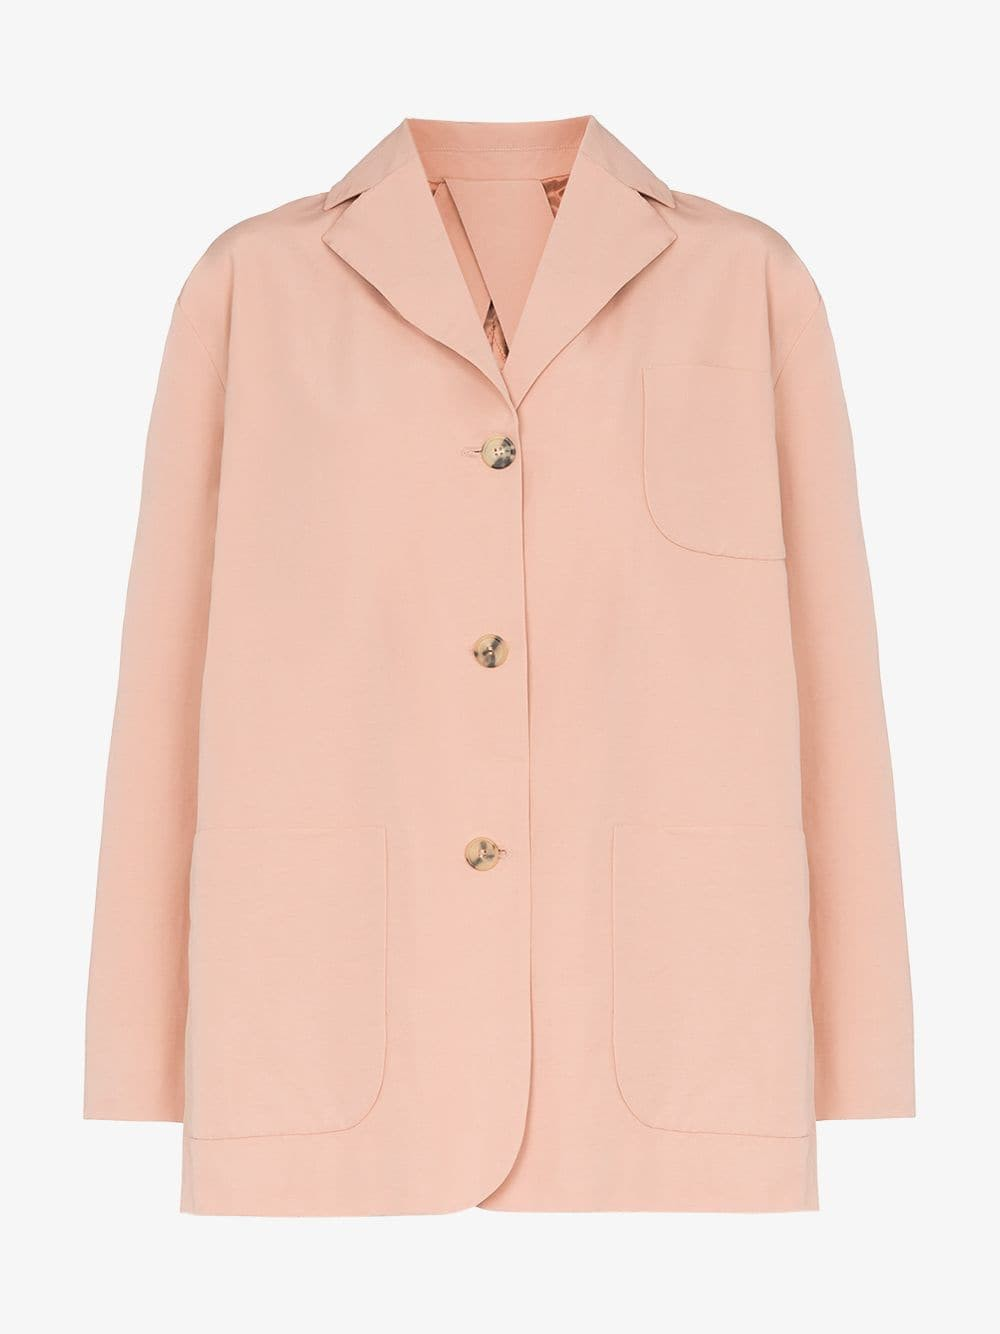 Plan C three pocket blazer jacket in pink